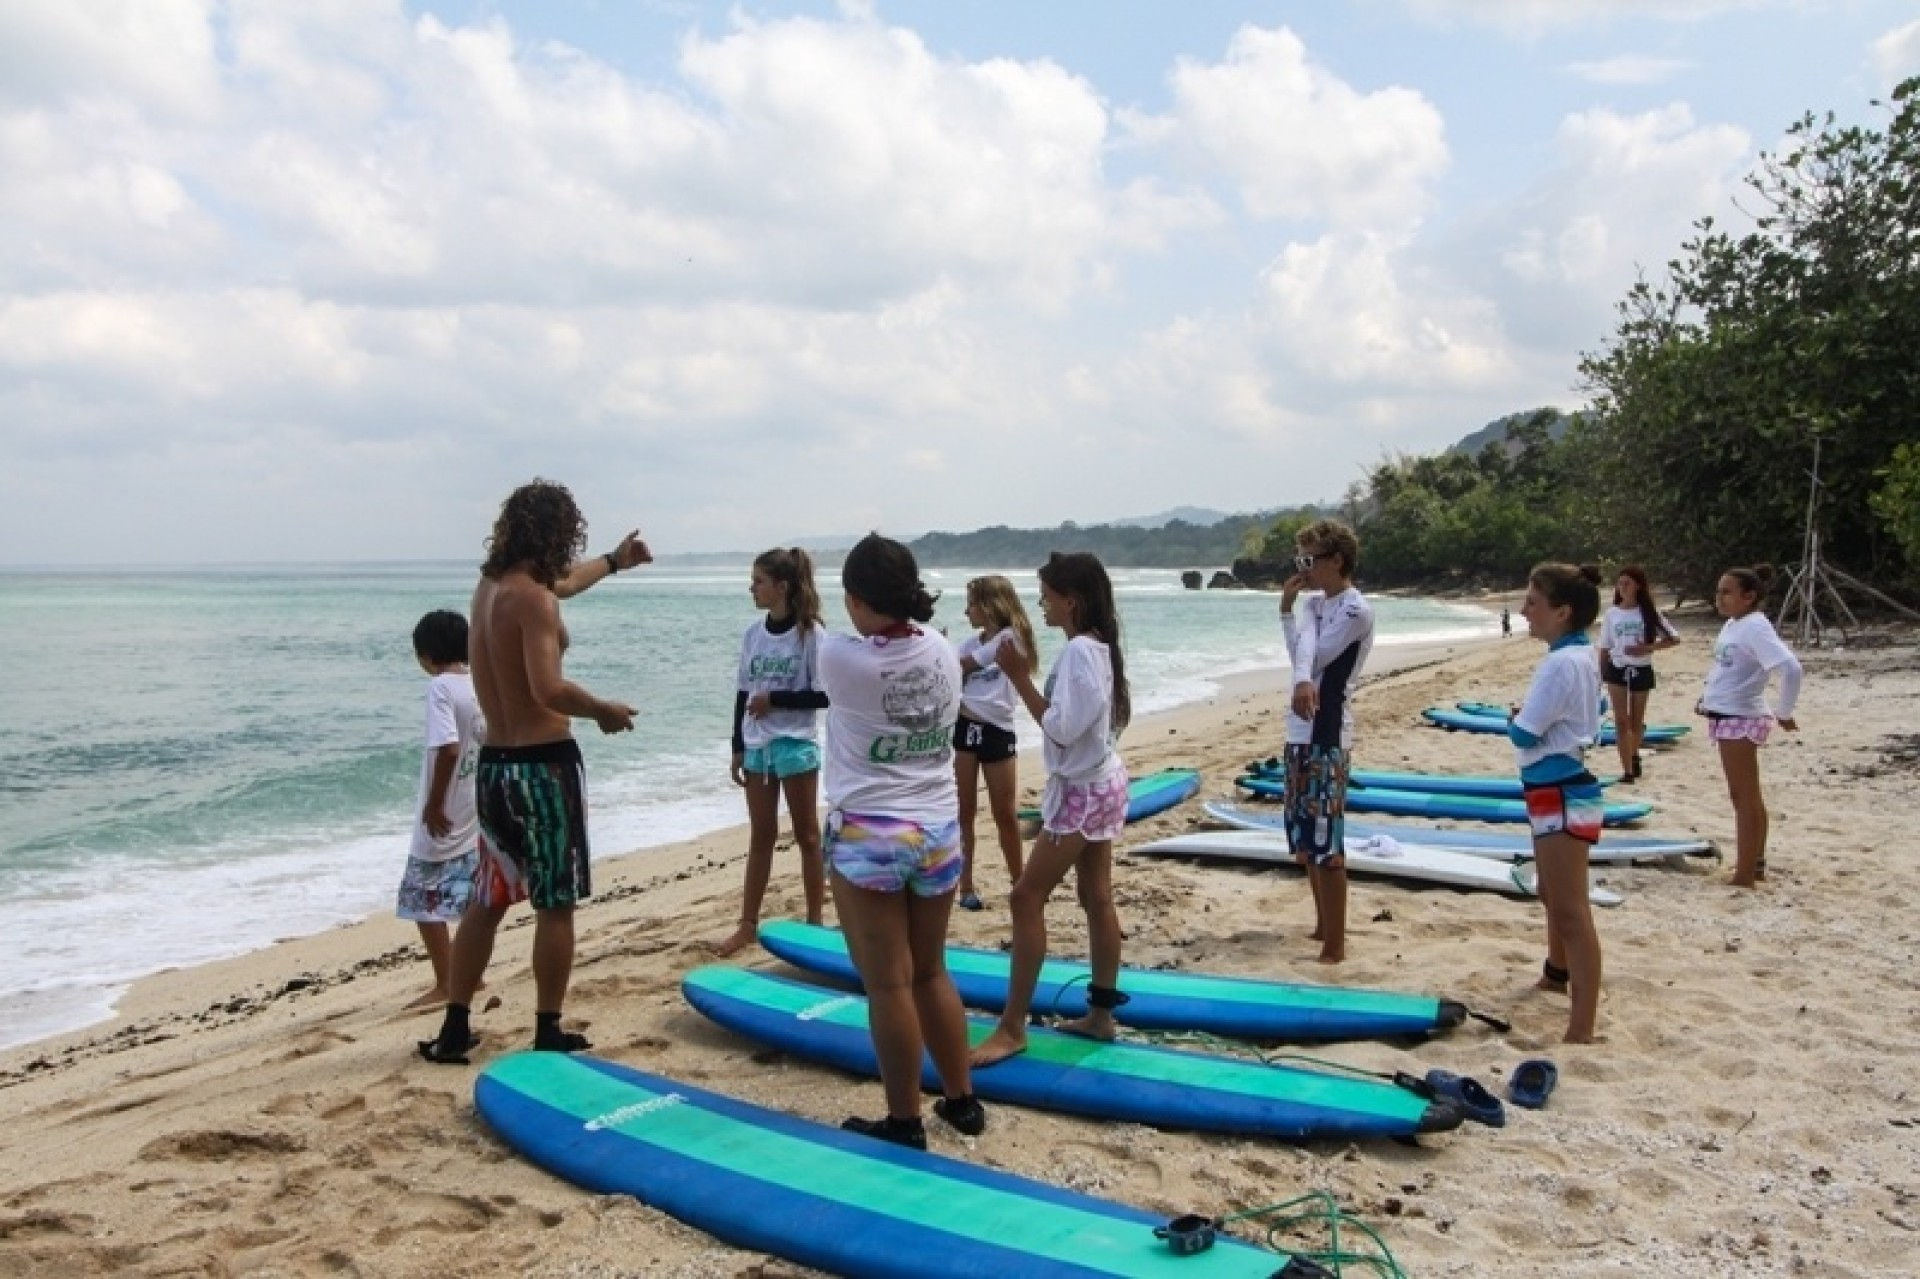 G-Land Joyo's Surf Camp's photo of Tiger Tracks Rights